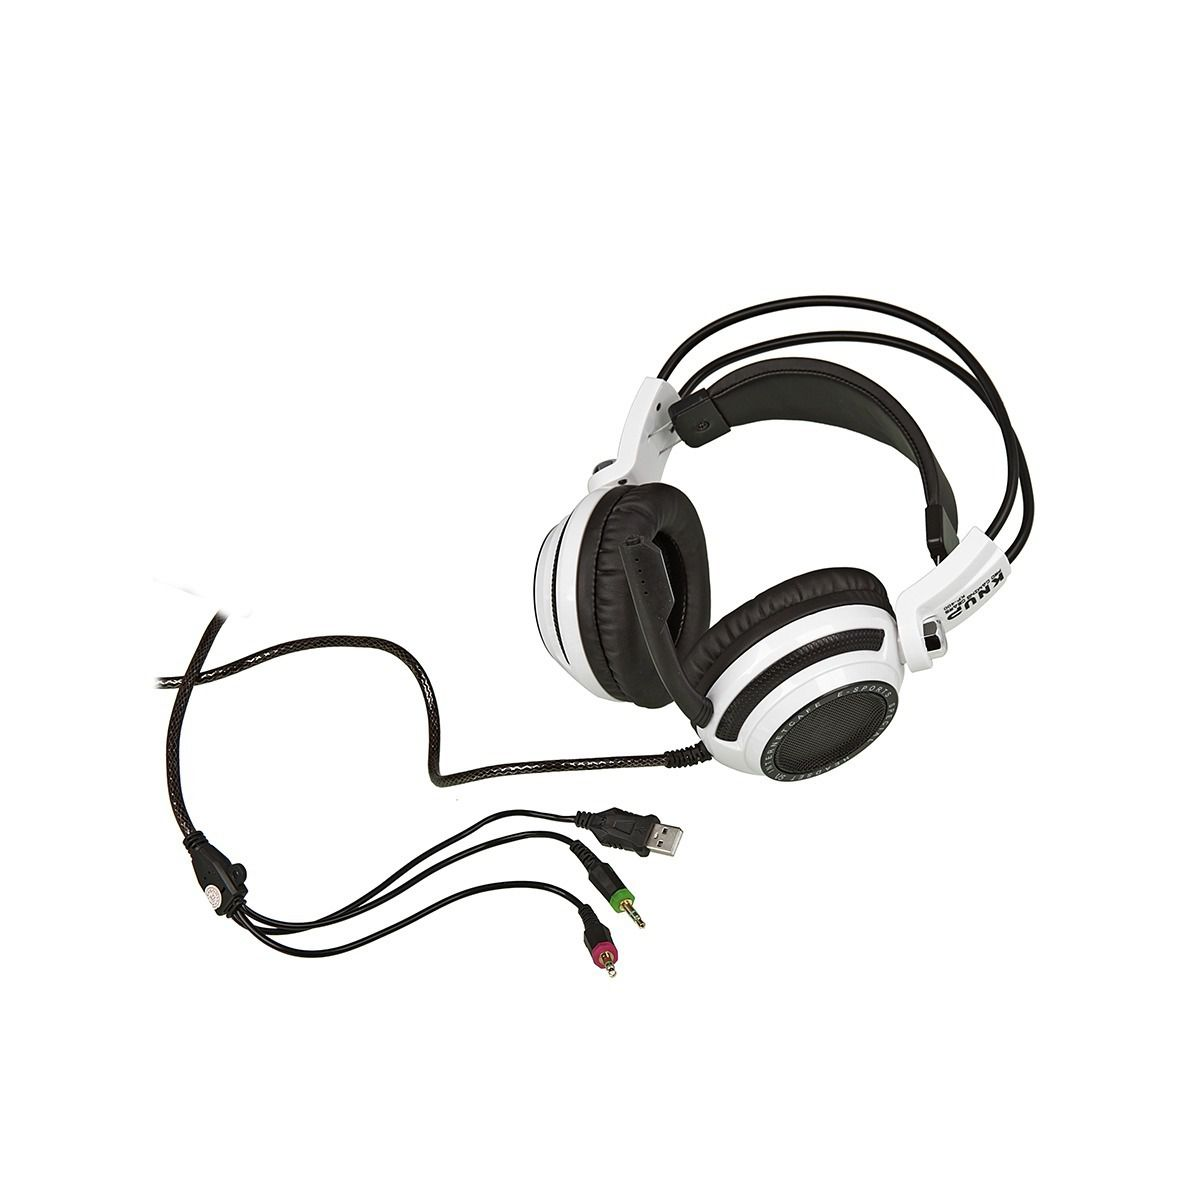 Headset Gamer 7.1 Knup Pro Gaming Gears KP-400 Com LED´s